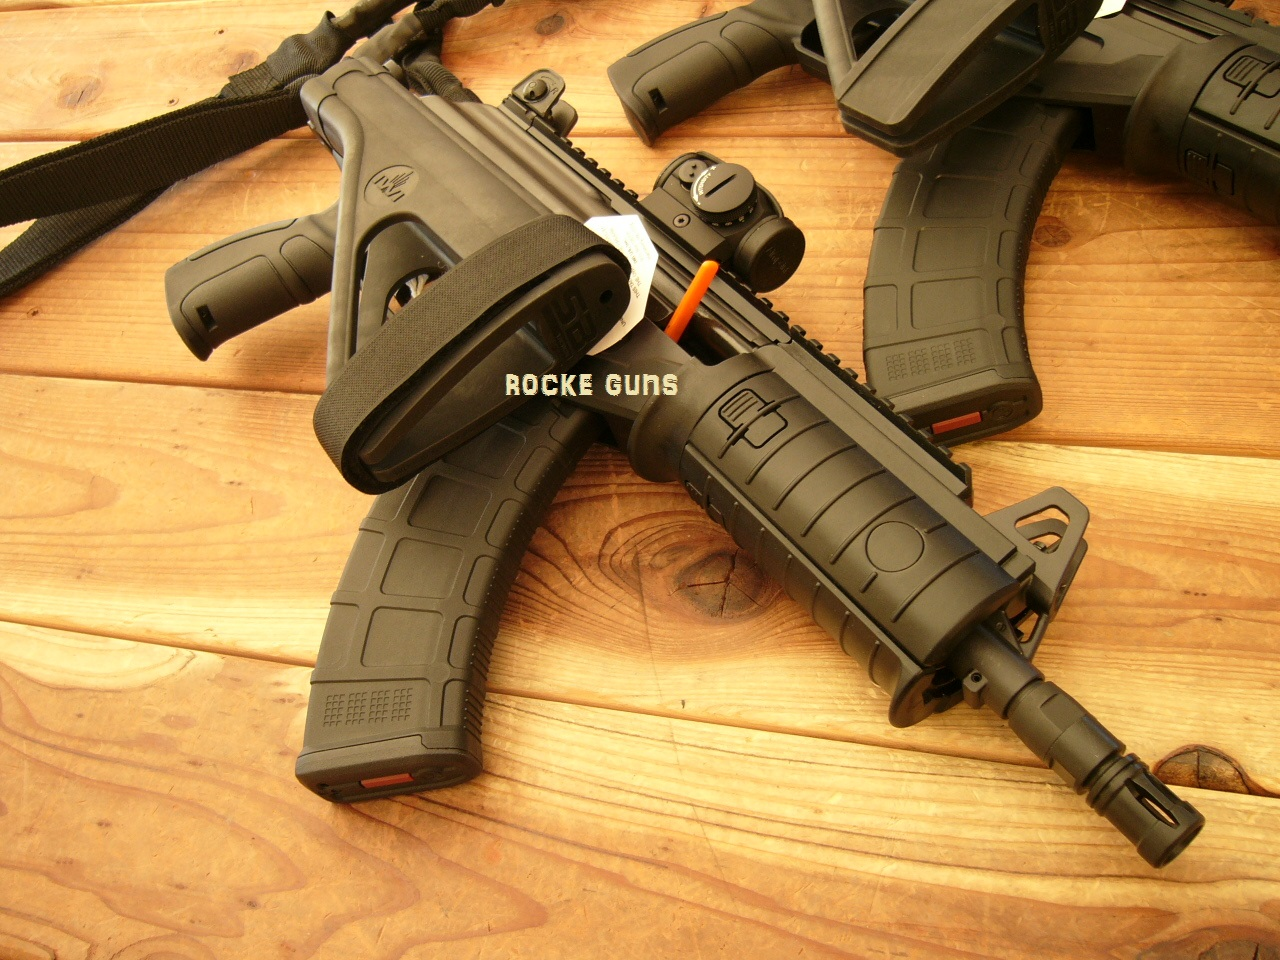 GALIL ACE PISTOL W/ FOLDING STOCK 5.56/.223 | Rocke Guns ...